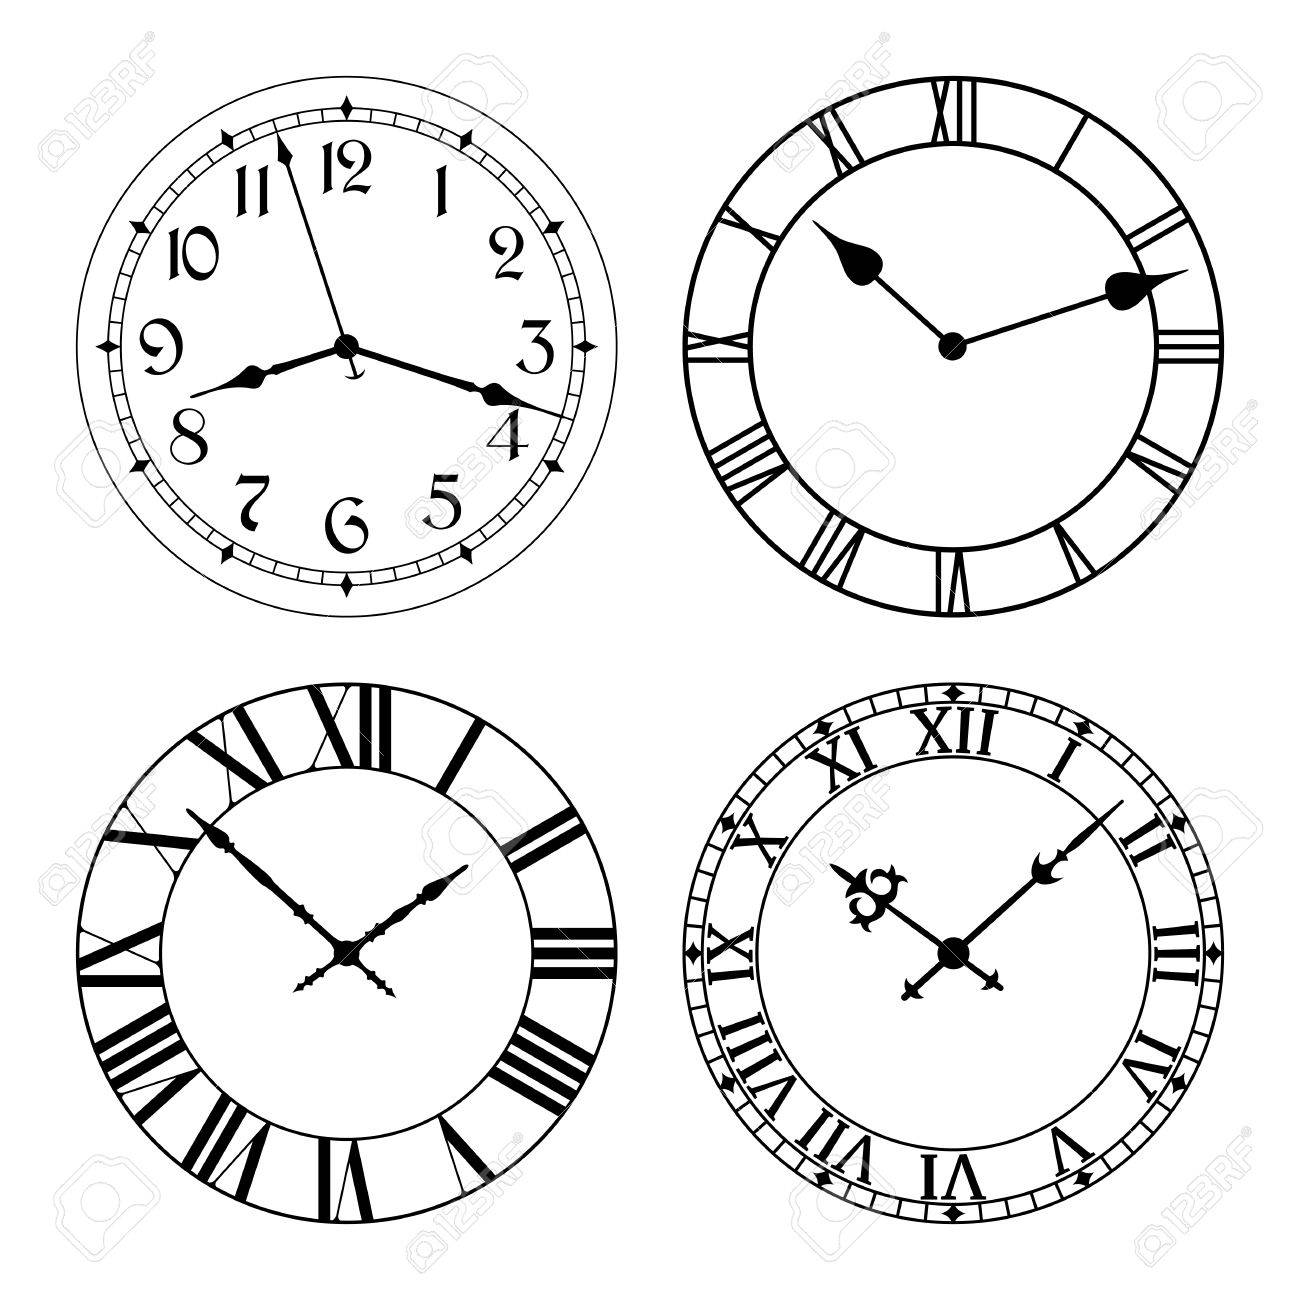 The set of different clock faces. Editable Clock, easily remove and replace hands and design. - 50643534